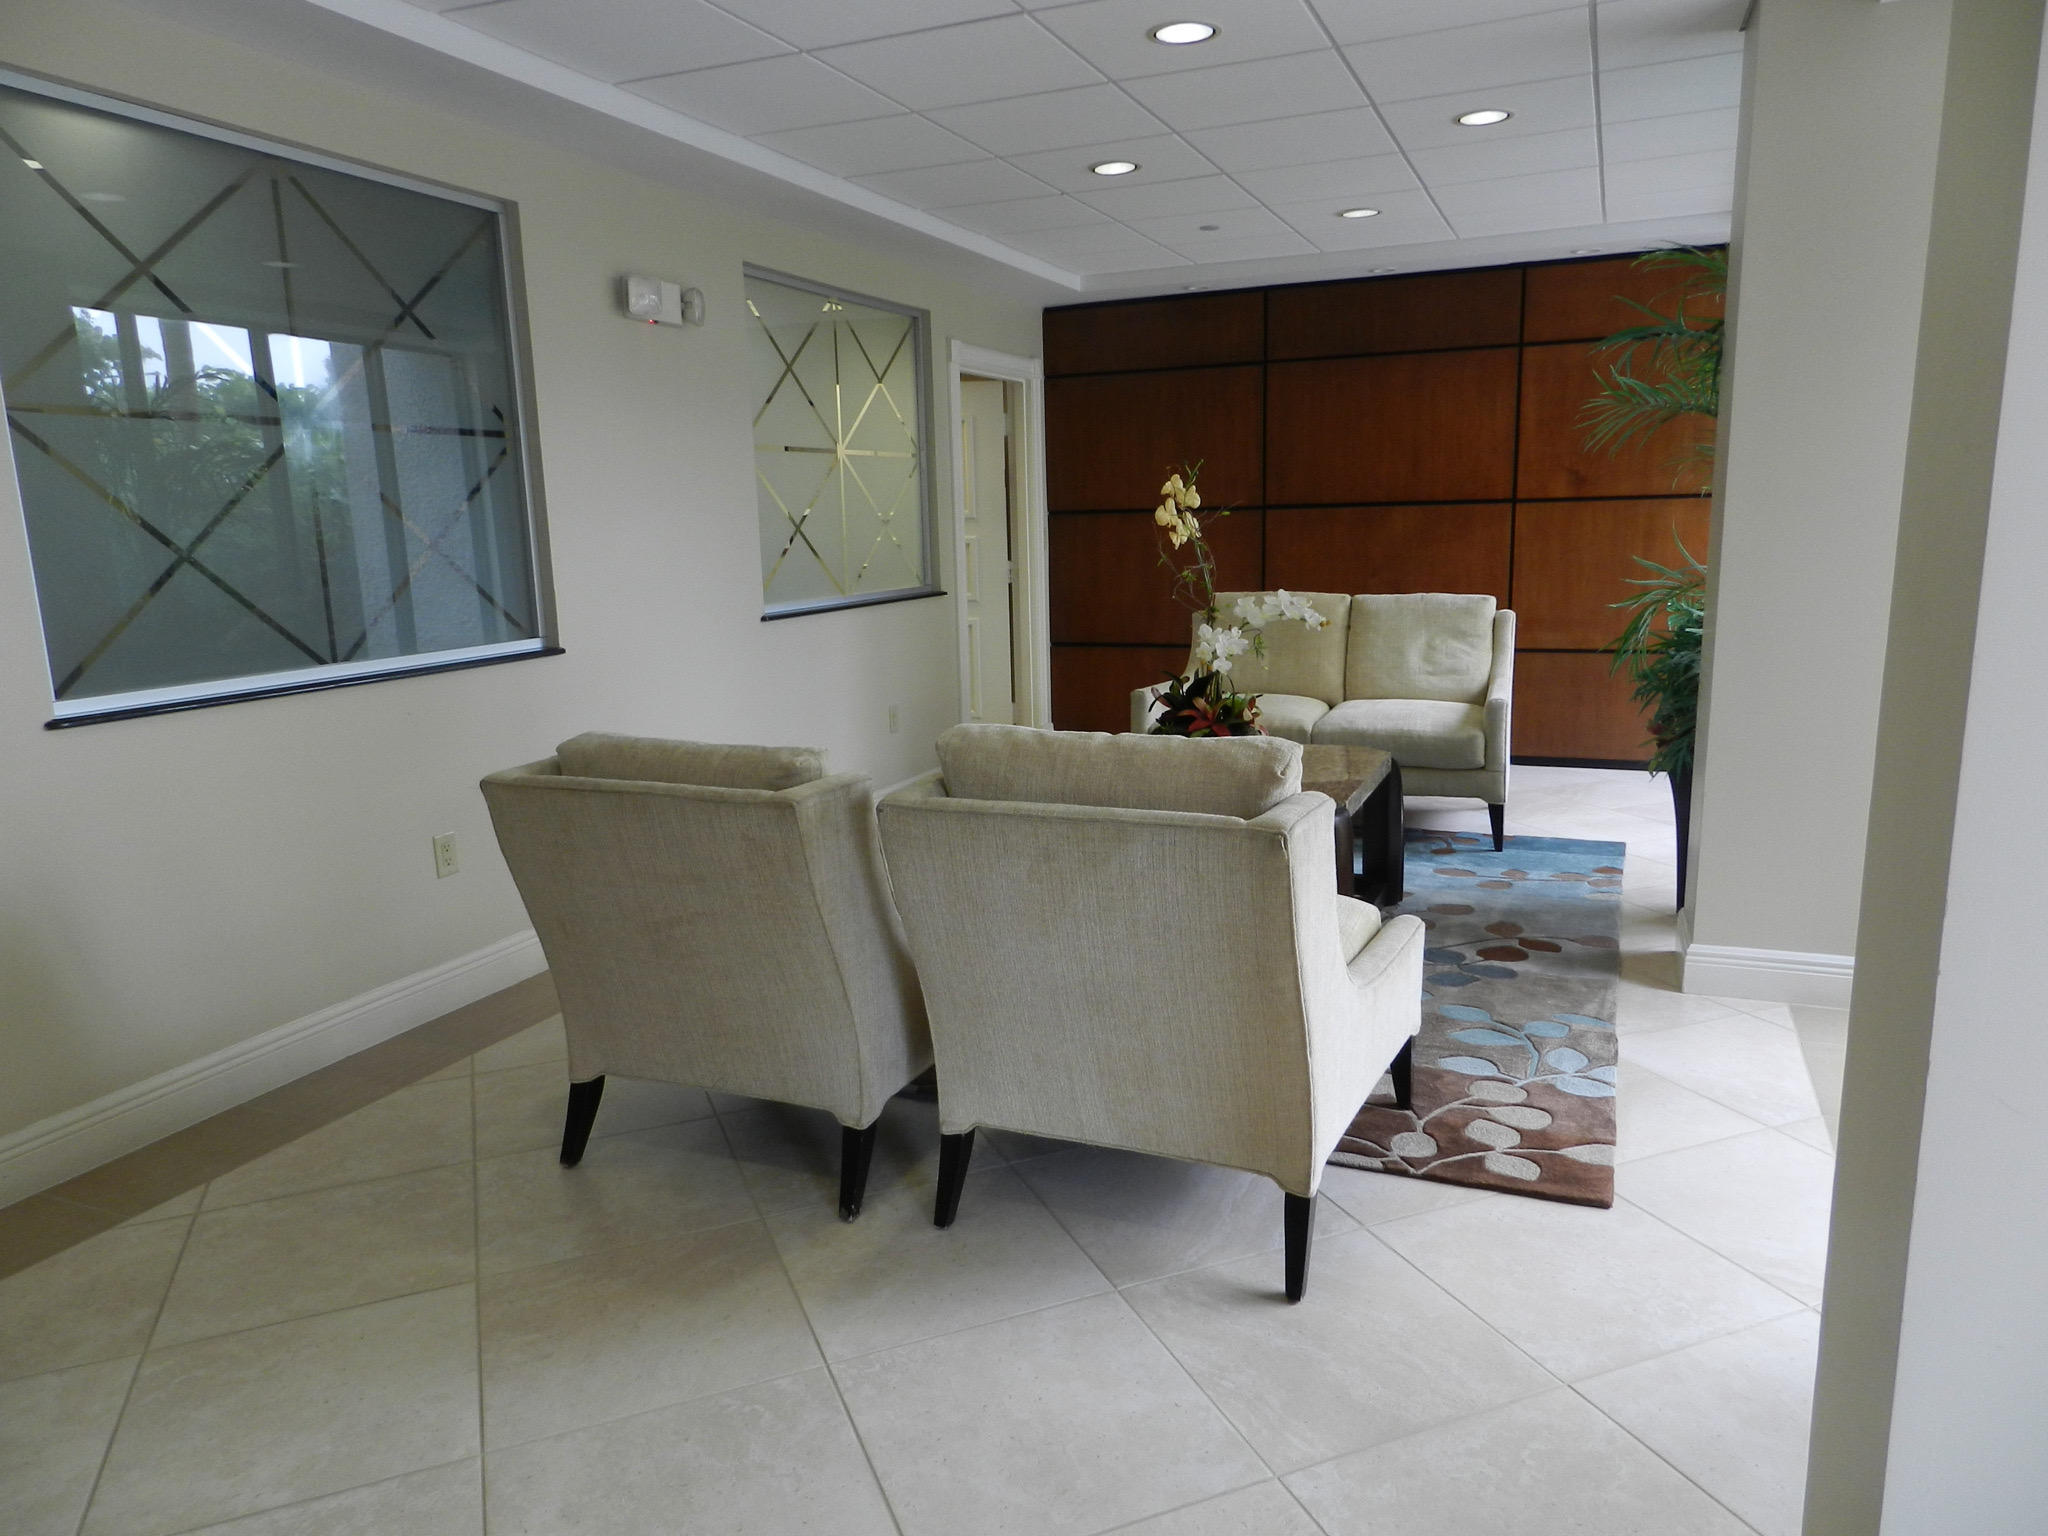 4200 Ocean Drive, Singer Island, Florida 33404, 2 Bedrooms Bedrooms, ,2 BathroomsBathrooms,Condo/Coop,For Sale,COTE D AZUR,Ocean,1,RX-10443925